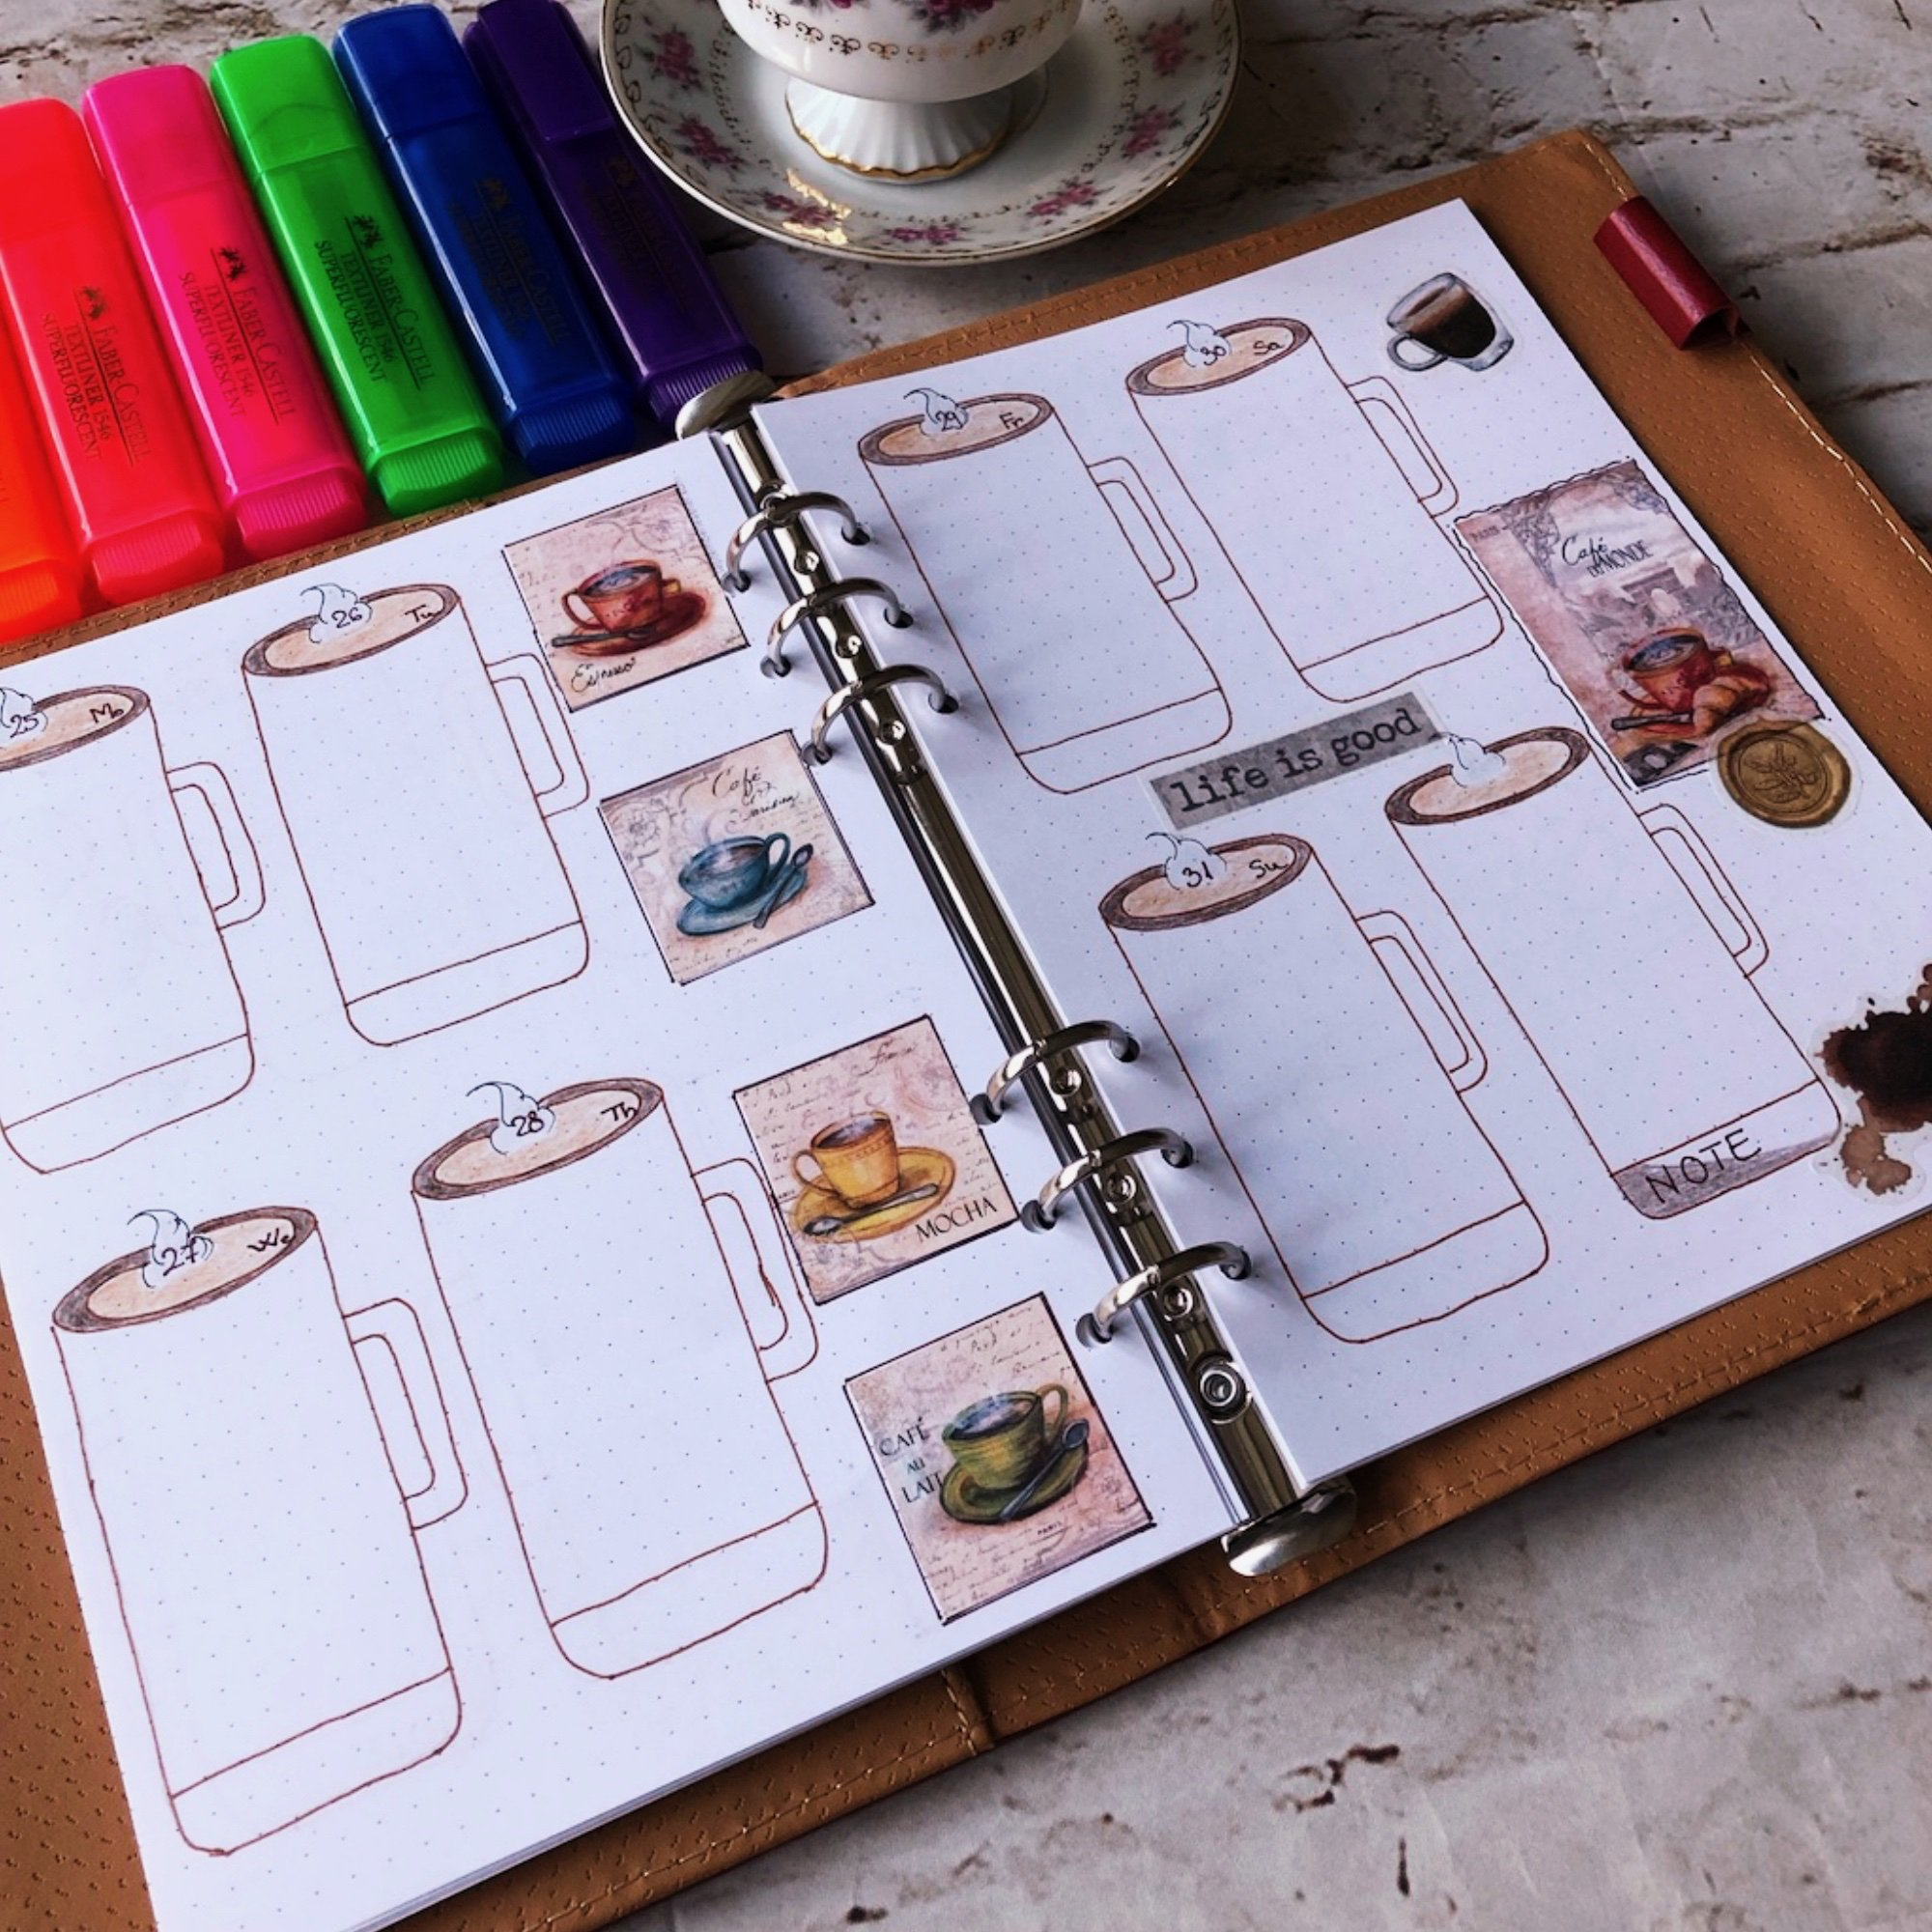 Creative journaling weekly planner – week 13 (March) - itstartswithacoffee.com #creativejournaling #weekly #weeklyplanner #March #planner #planning